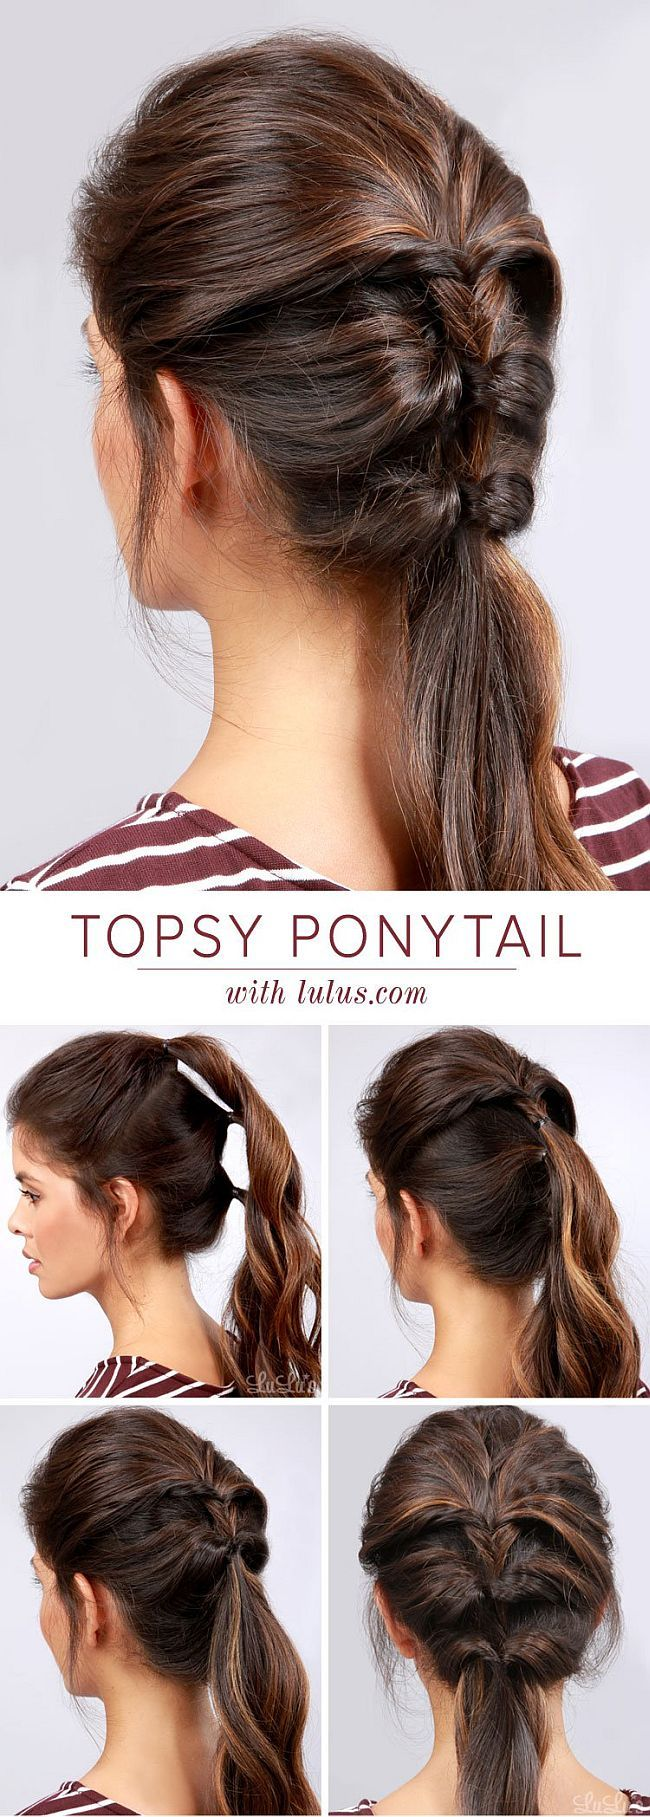 topsy ponytail  #topsy #ponytail #hair #lovehair #easy